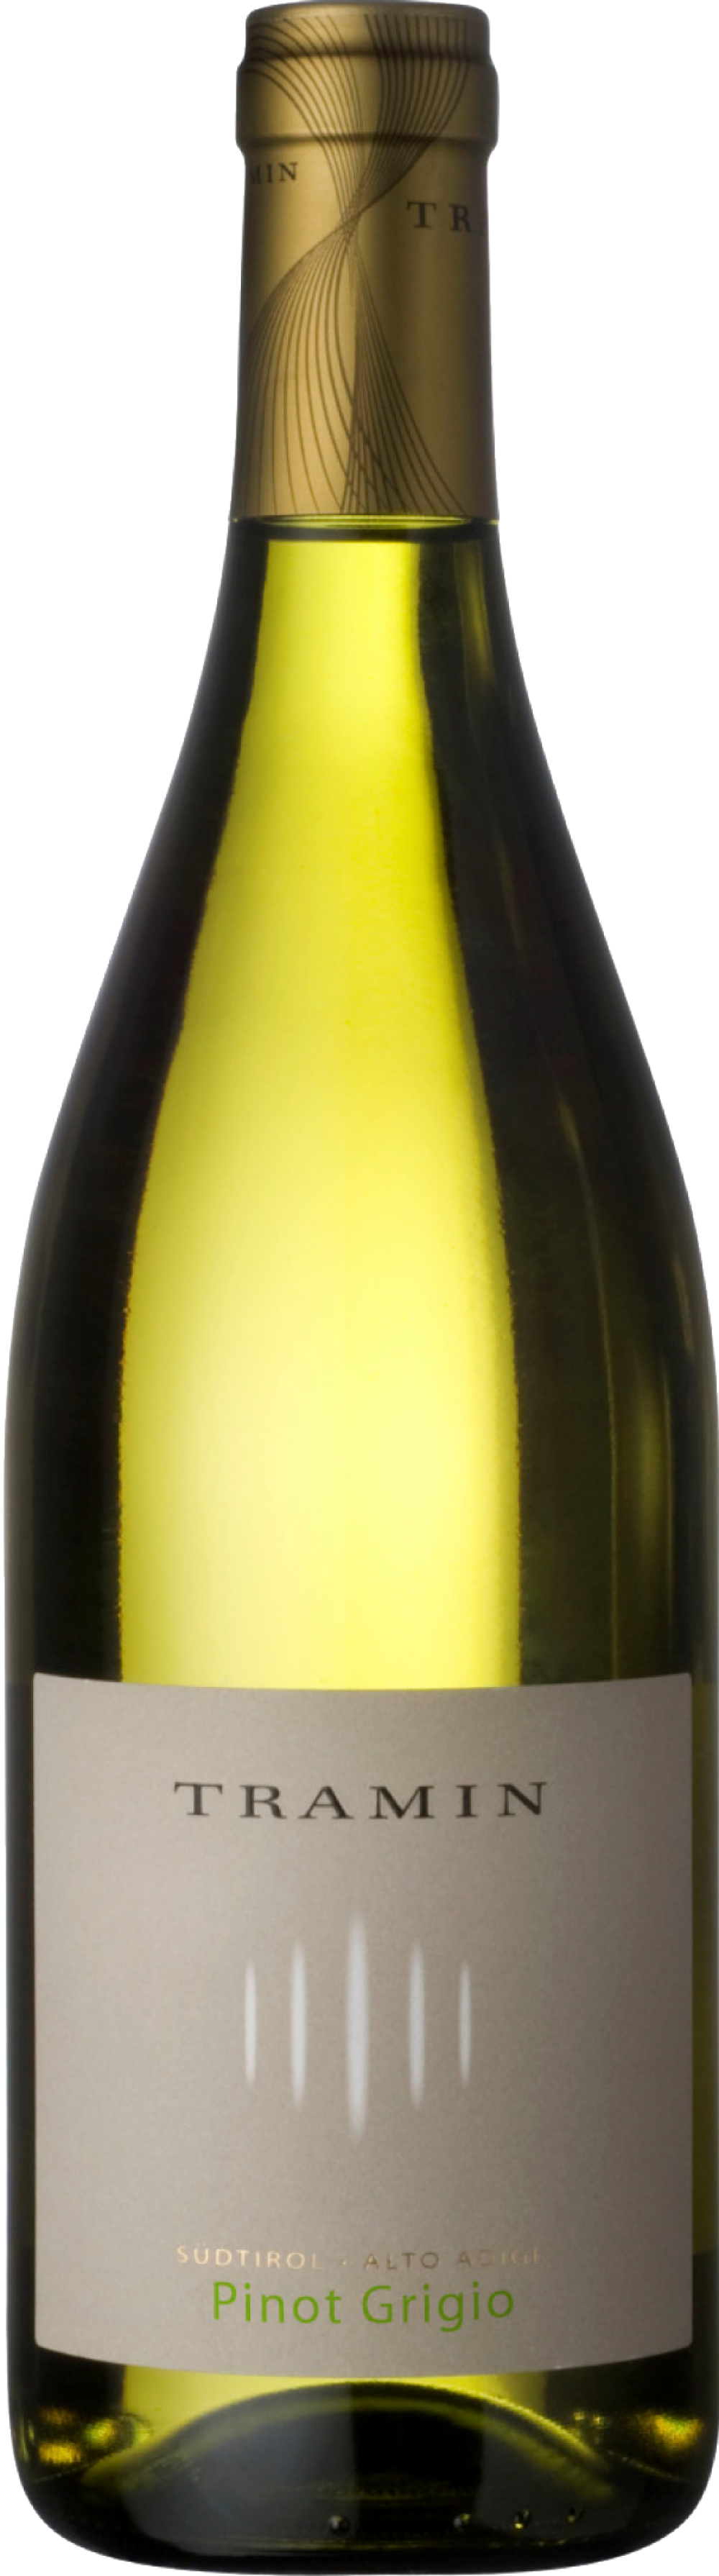 files/images/wines/Italy/cantina-tramin/IT1463.png